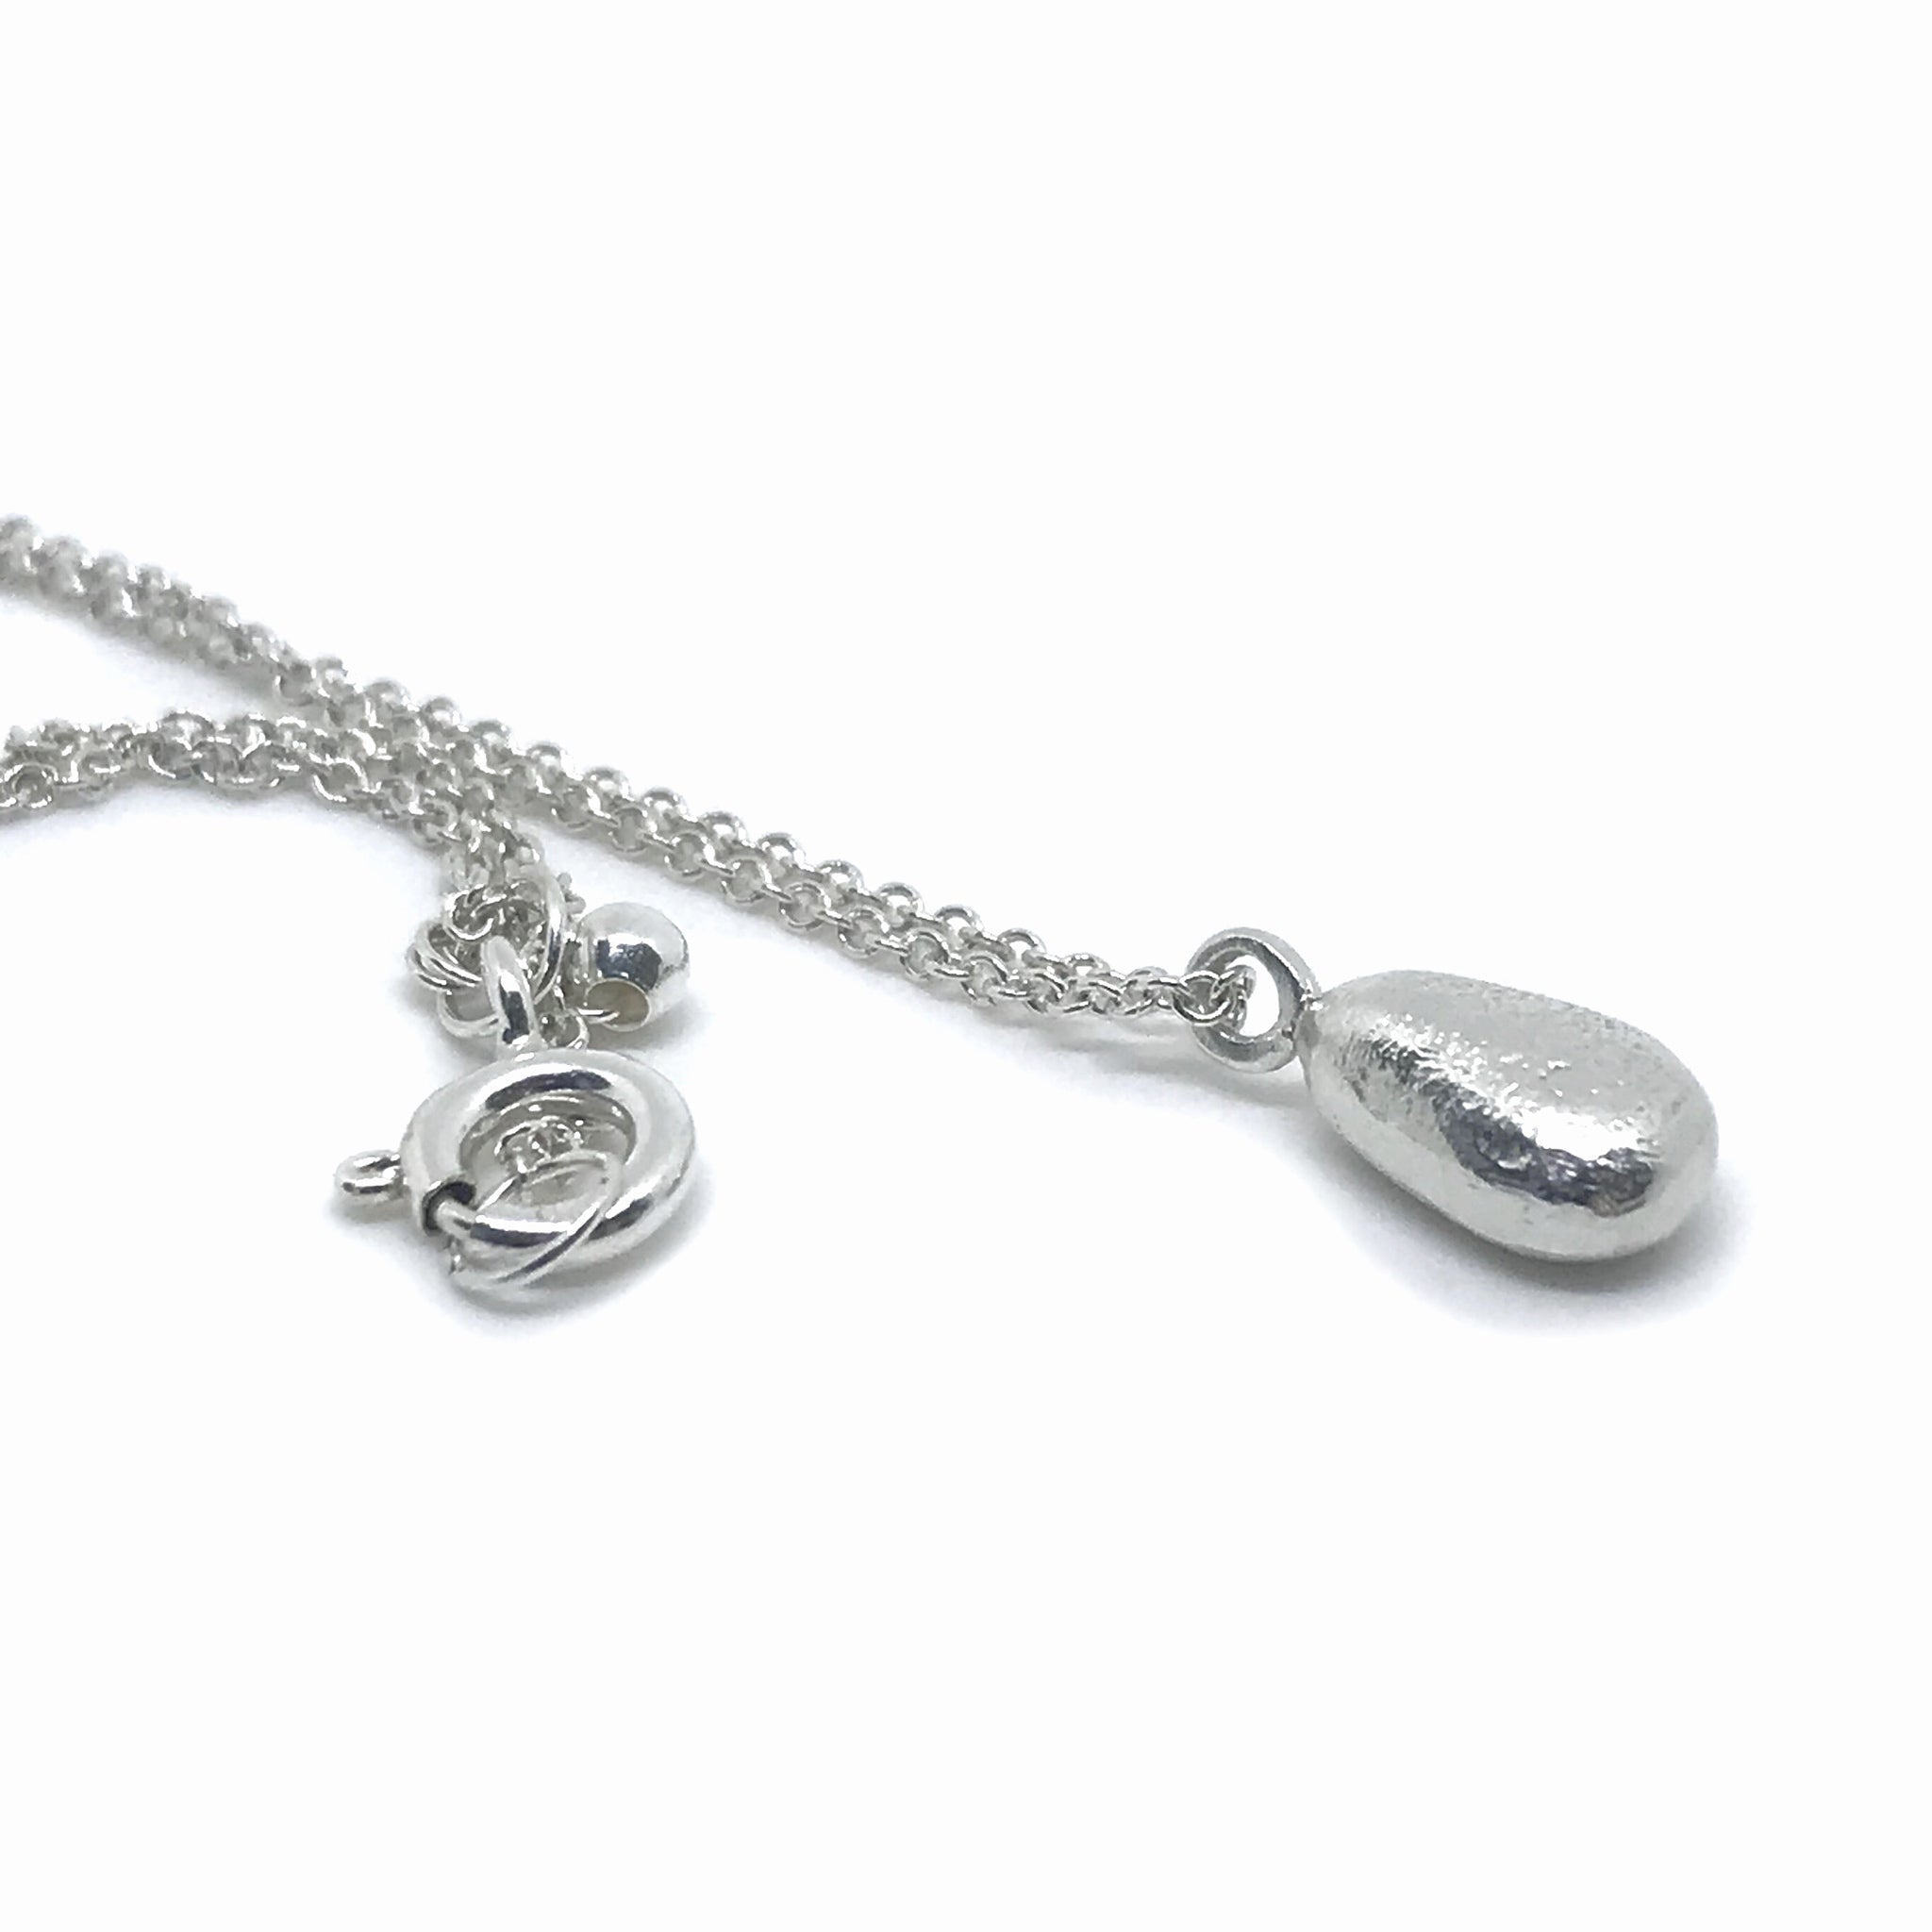 Silver Necklace with Teardrop Seaglass Charm  - kriket-broadhurst jewellery